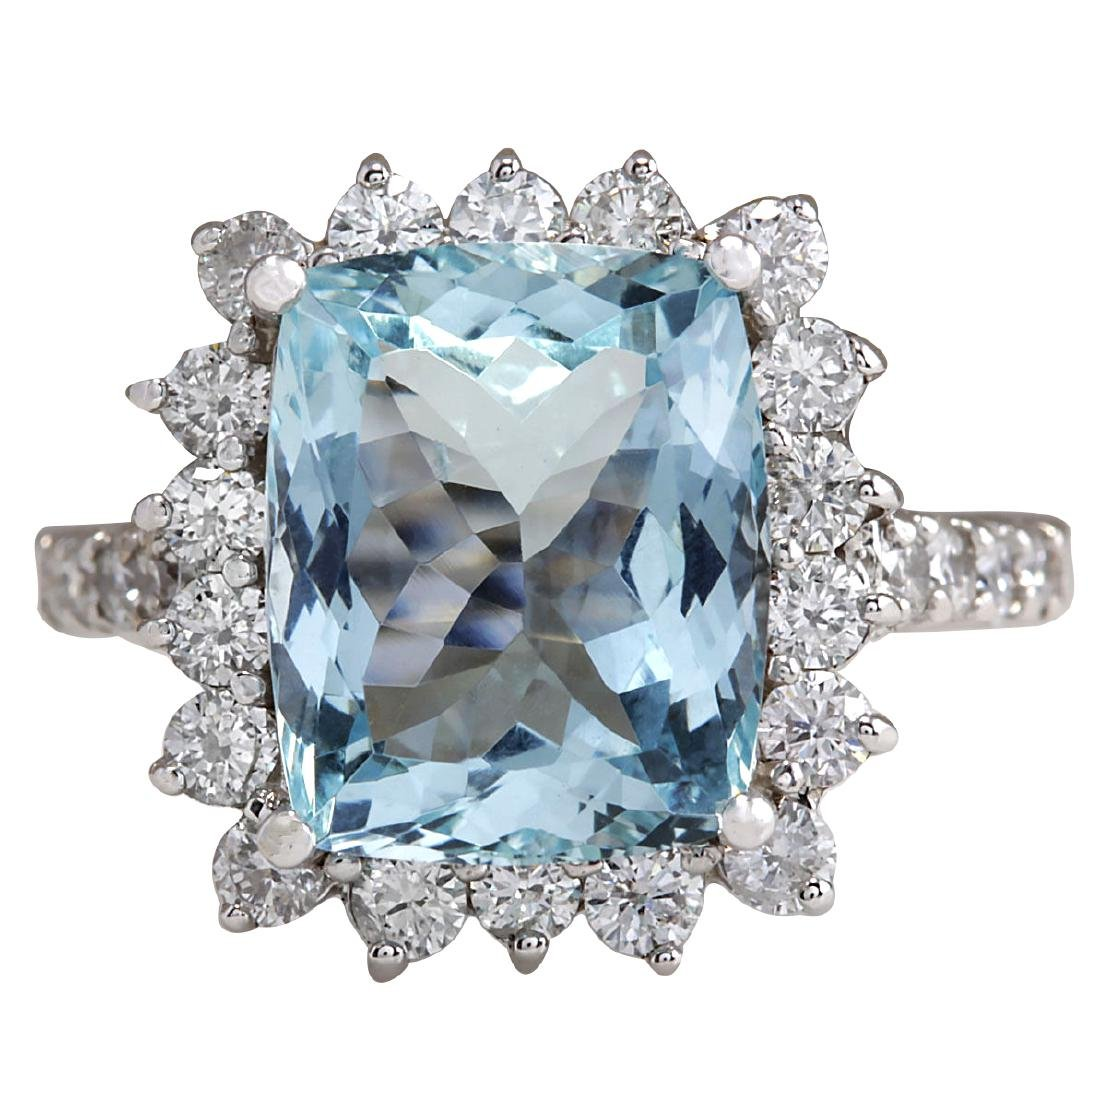 6.01CTW Natural Aquamarine And Diamond Ring In 18K